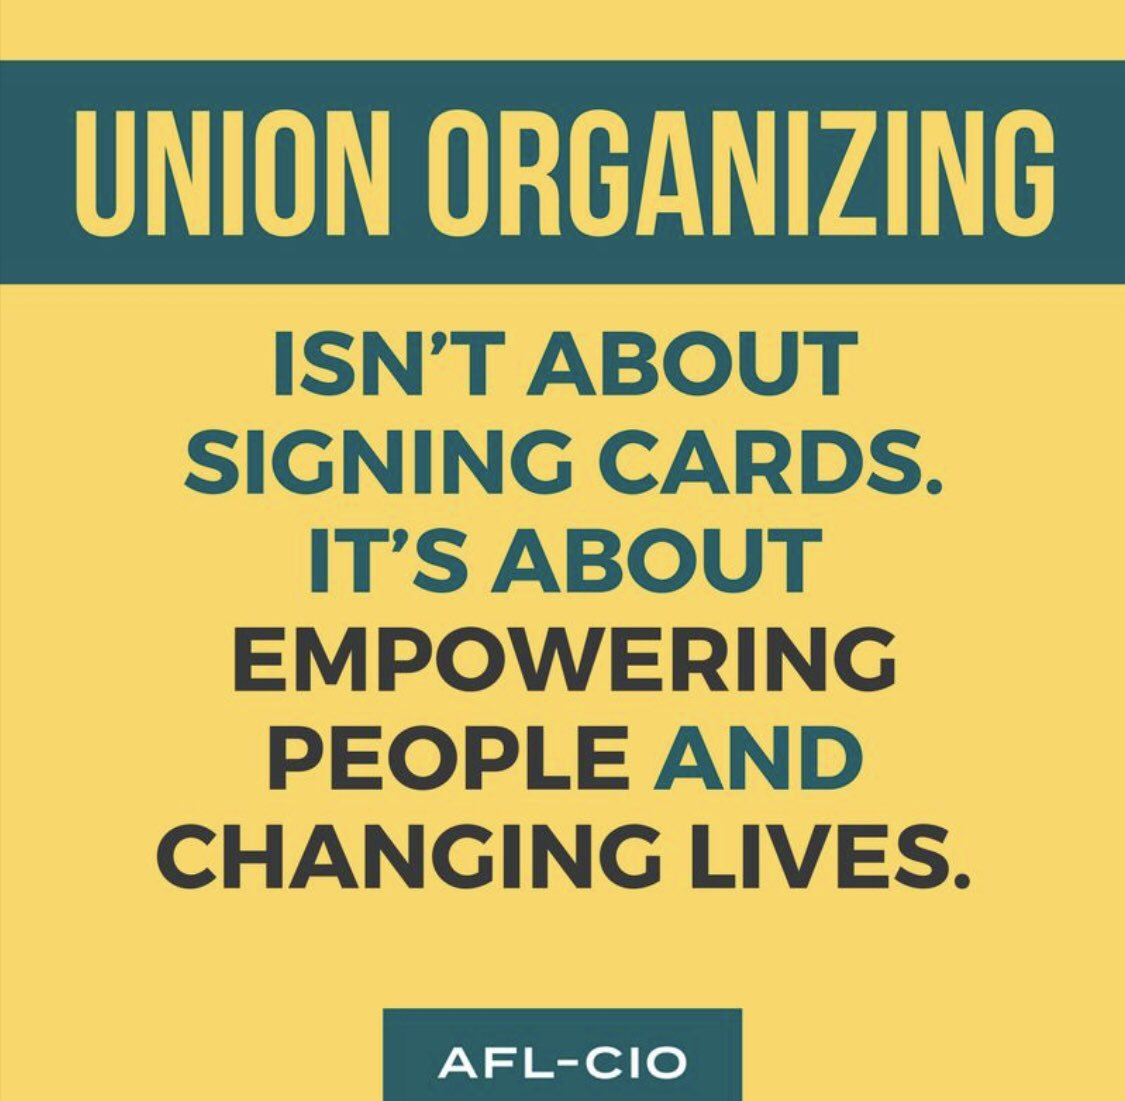 Union organizing isn't about signing cards. It's about empowering people and changing lives. #FactFriday #UnionStrong .@AFLCIO<br>http://pic.twitter.com/vw2CGh90ap